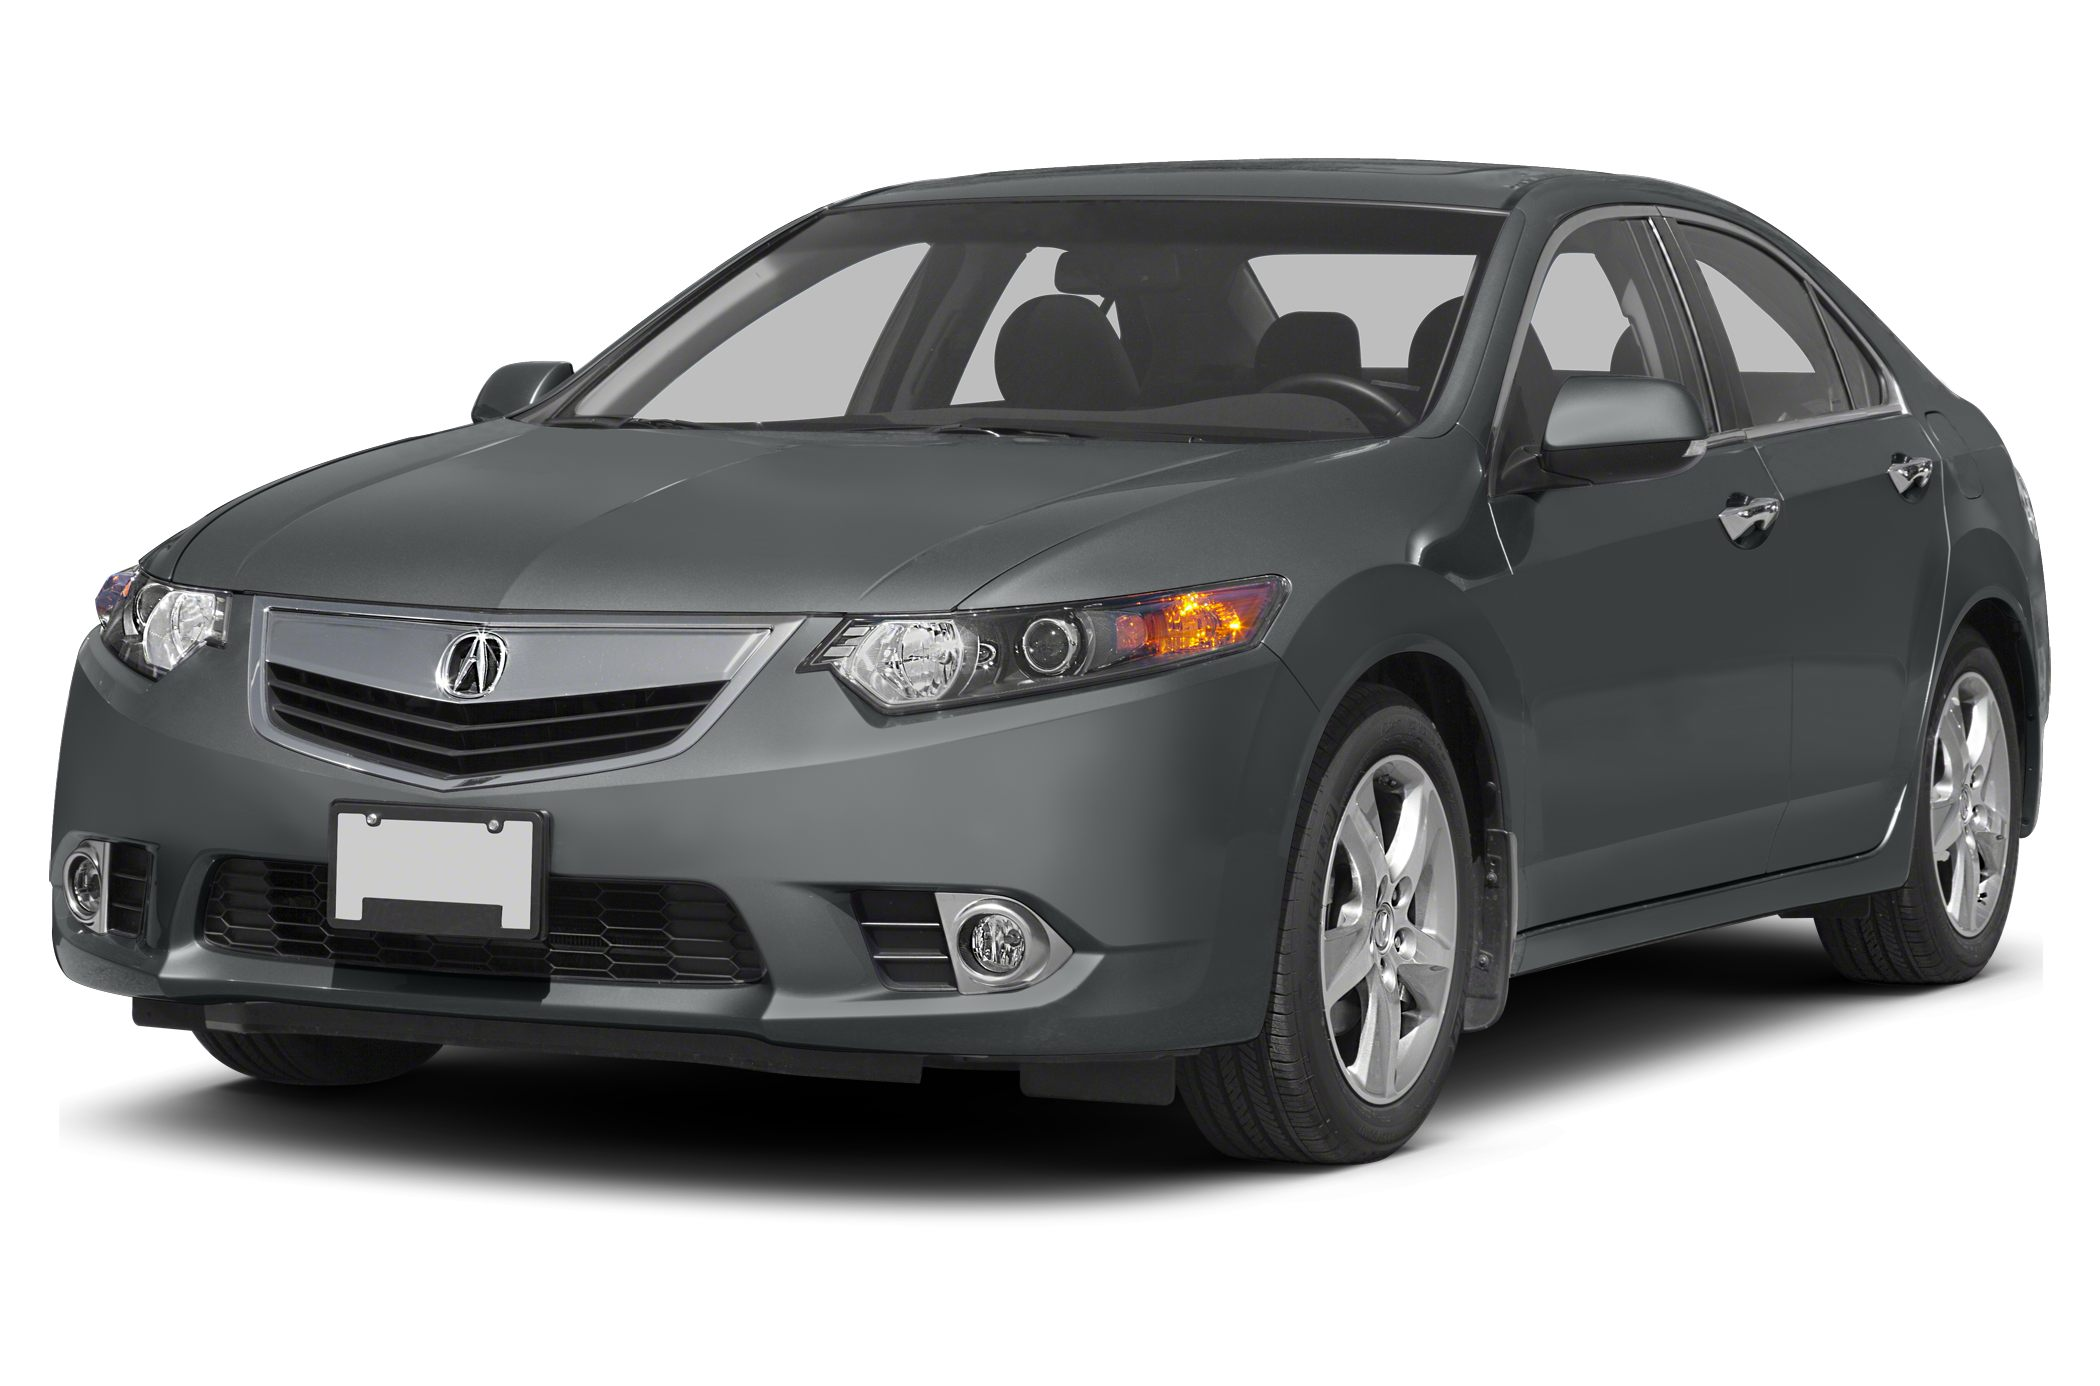 2011 Acura TSX Specs and Prices